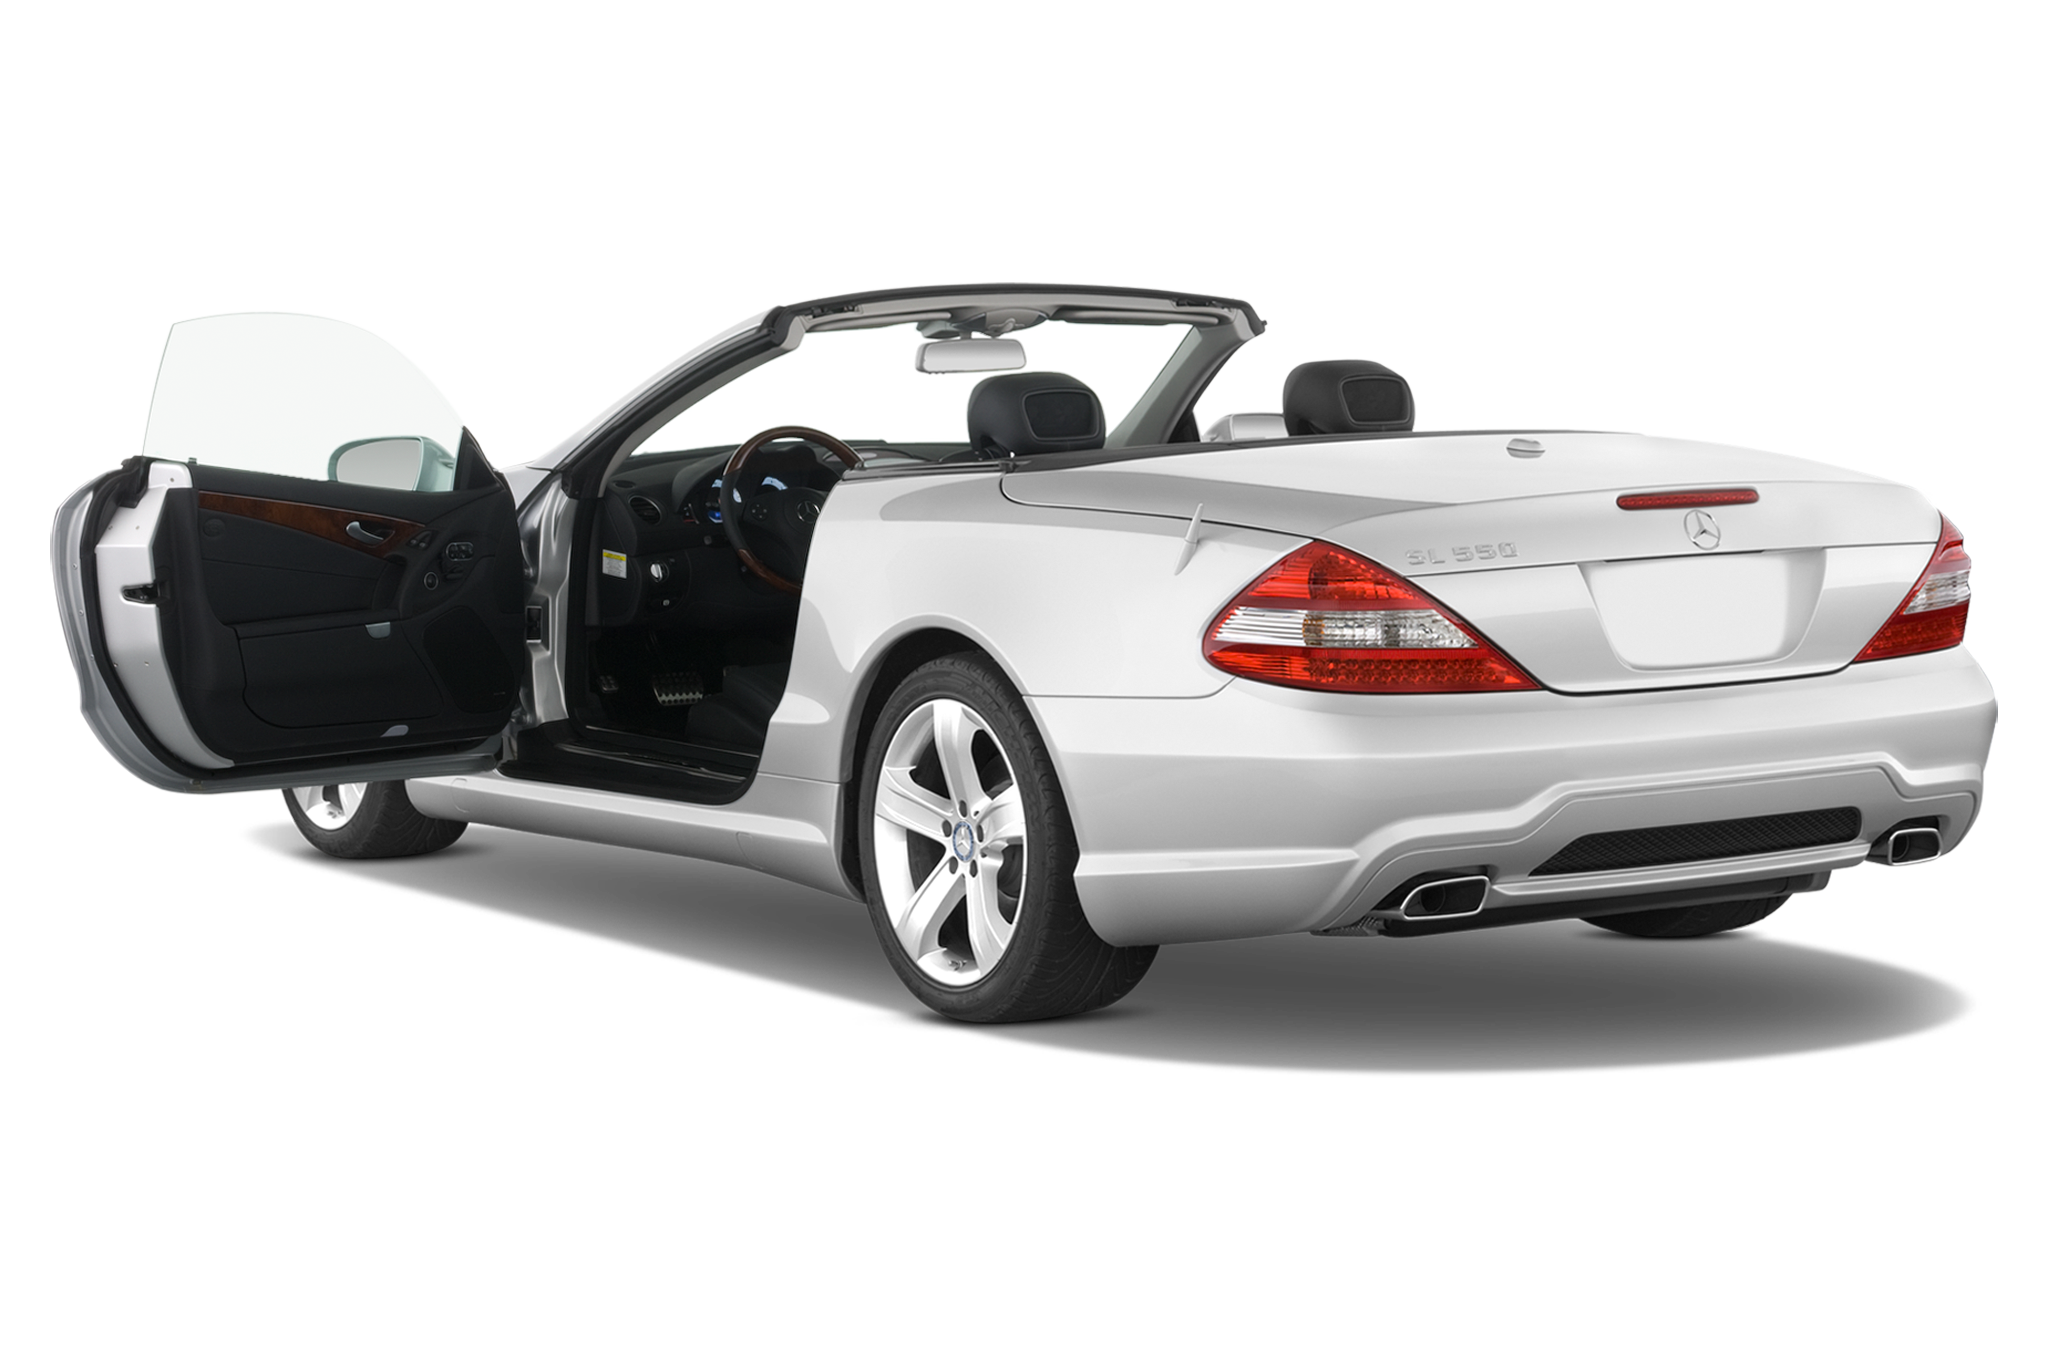 2011 mercedes benz sl550 mercedes benz luxury. Black Bedroom Furniture Sets. Home Design Ideas